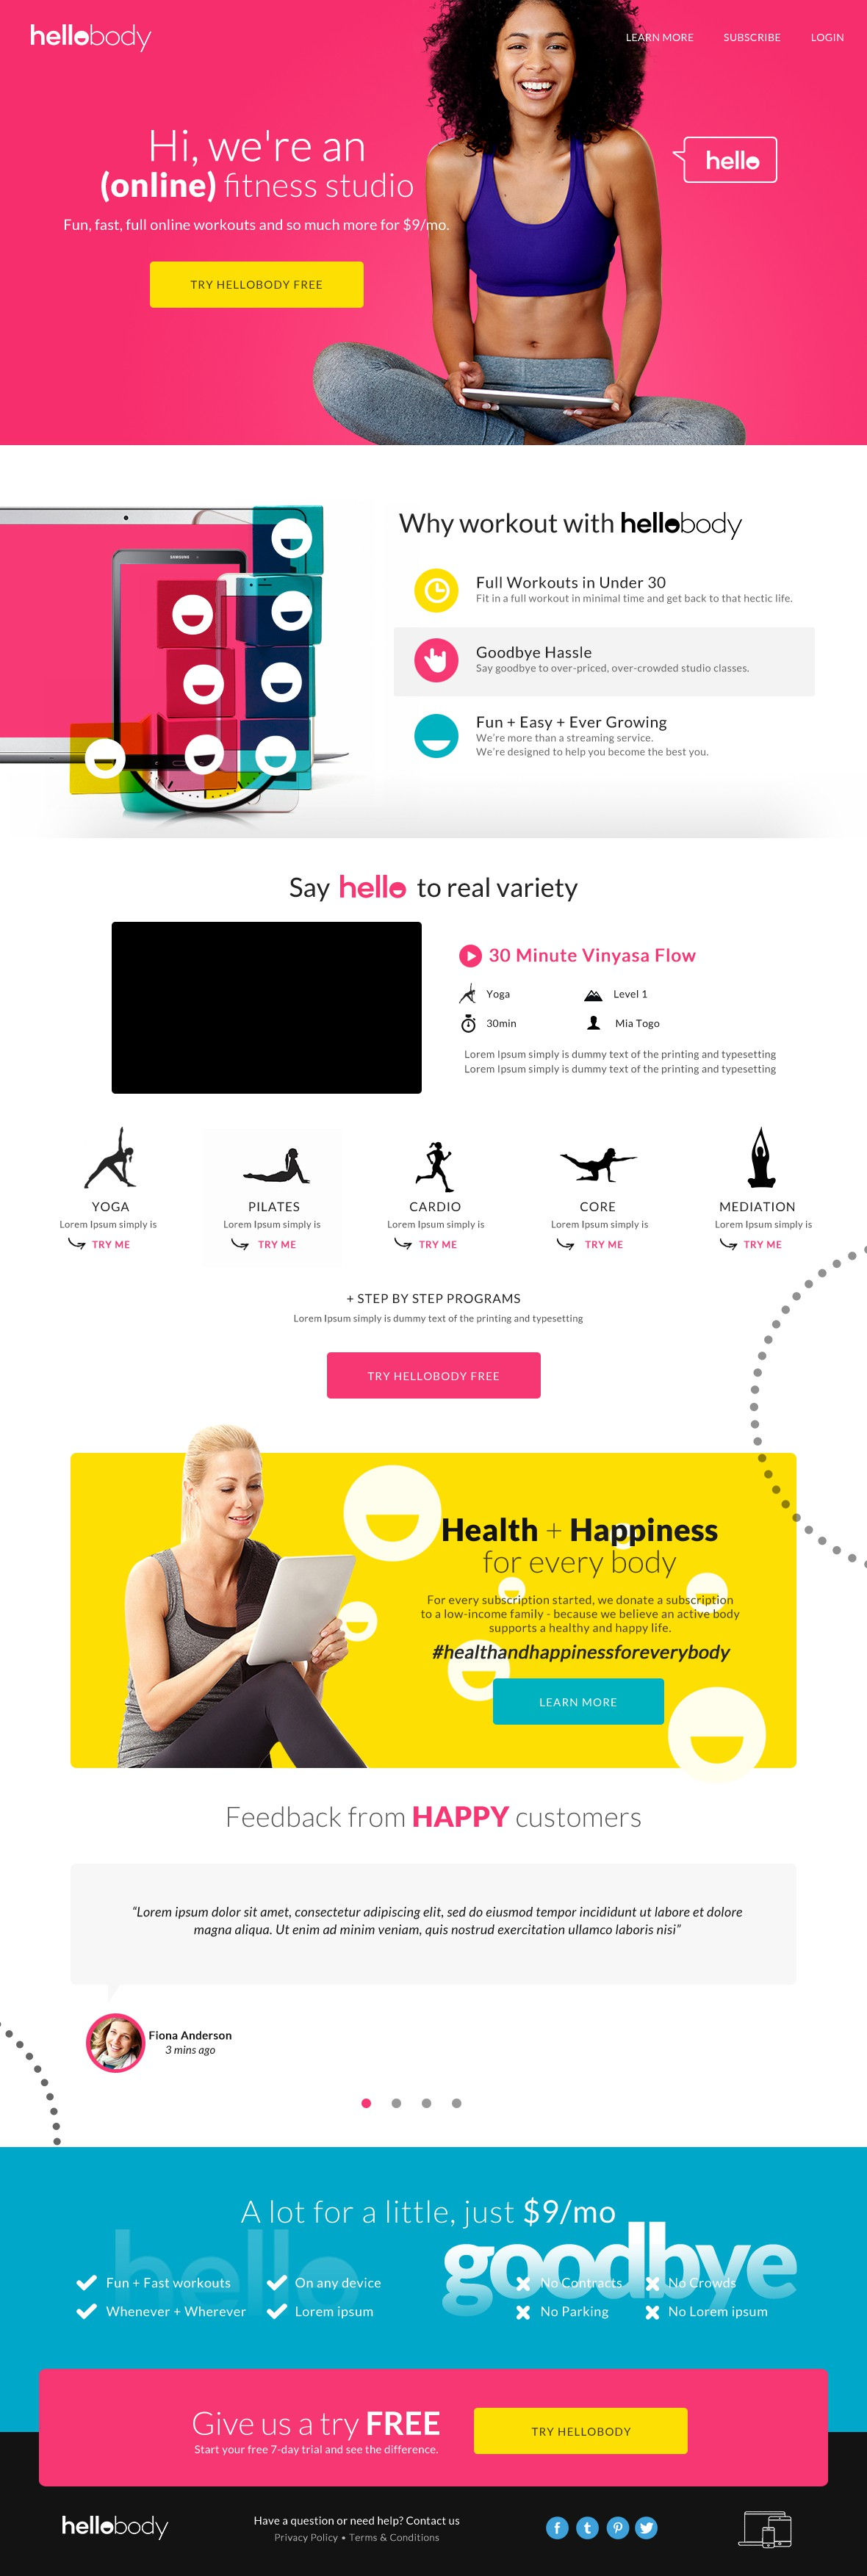 Help Start a Happy, Healthy Online Fitness Company!